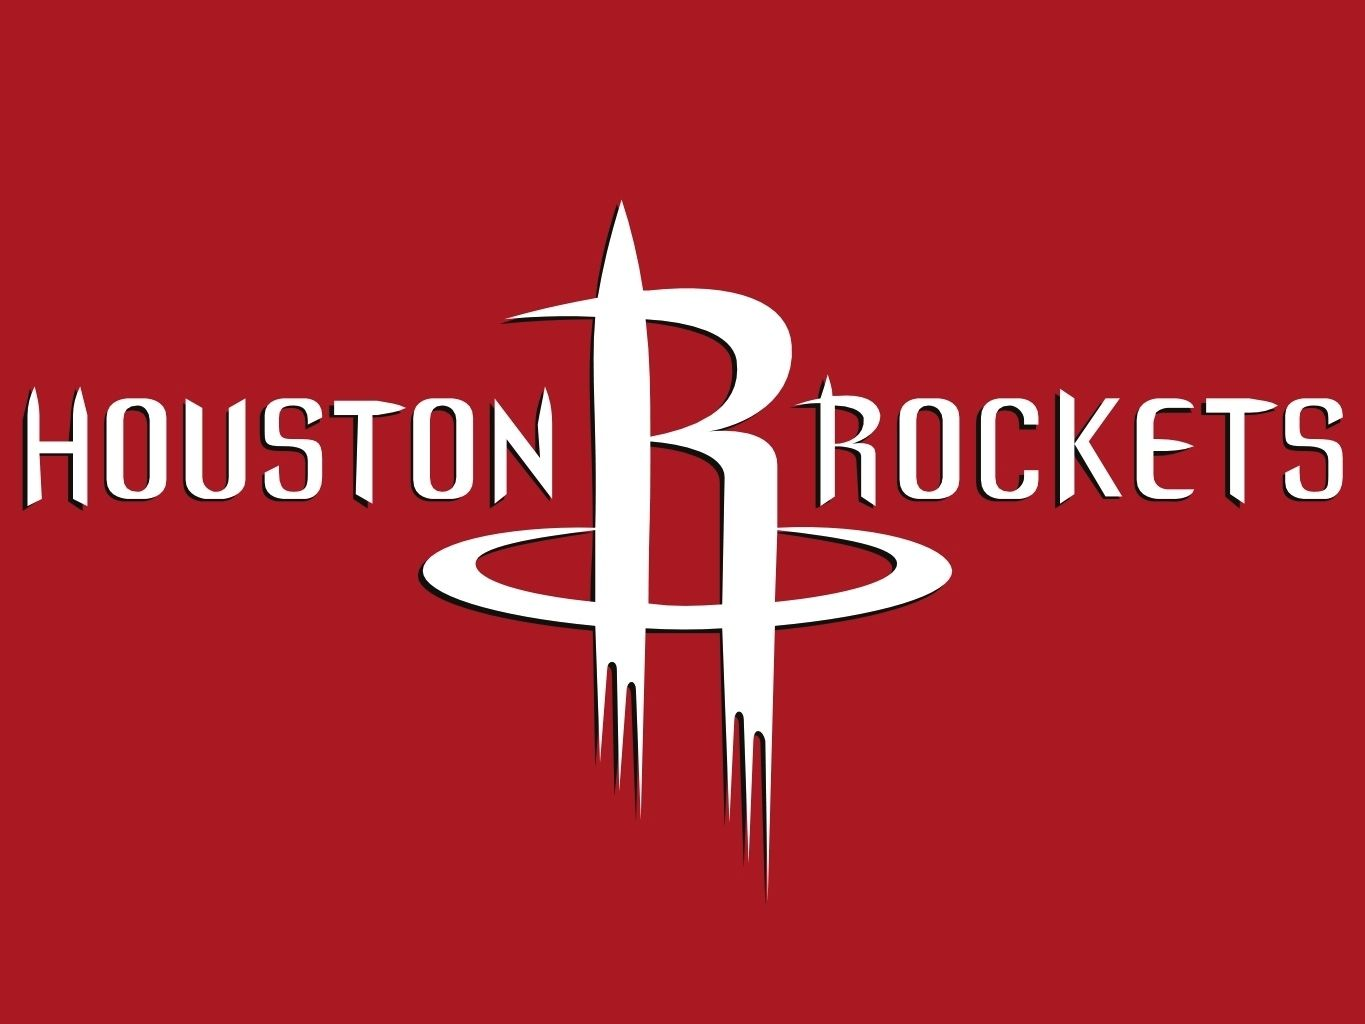 The Rockets Win That Forces This Series Into A Game 7 Showdown Has